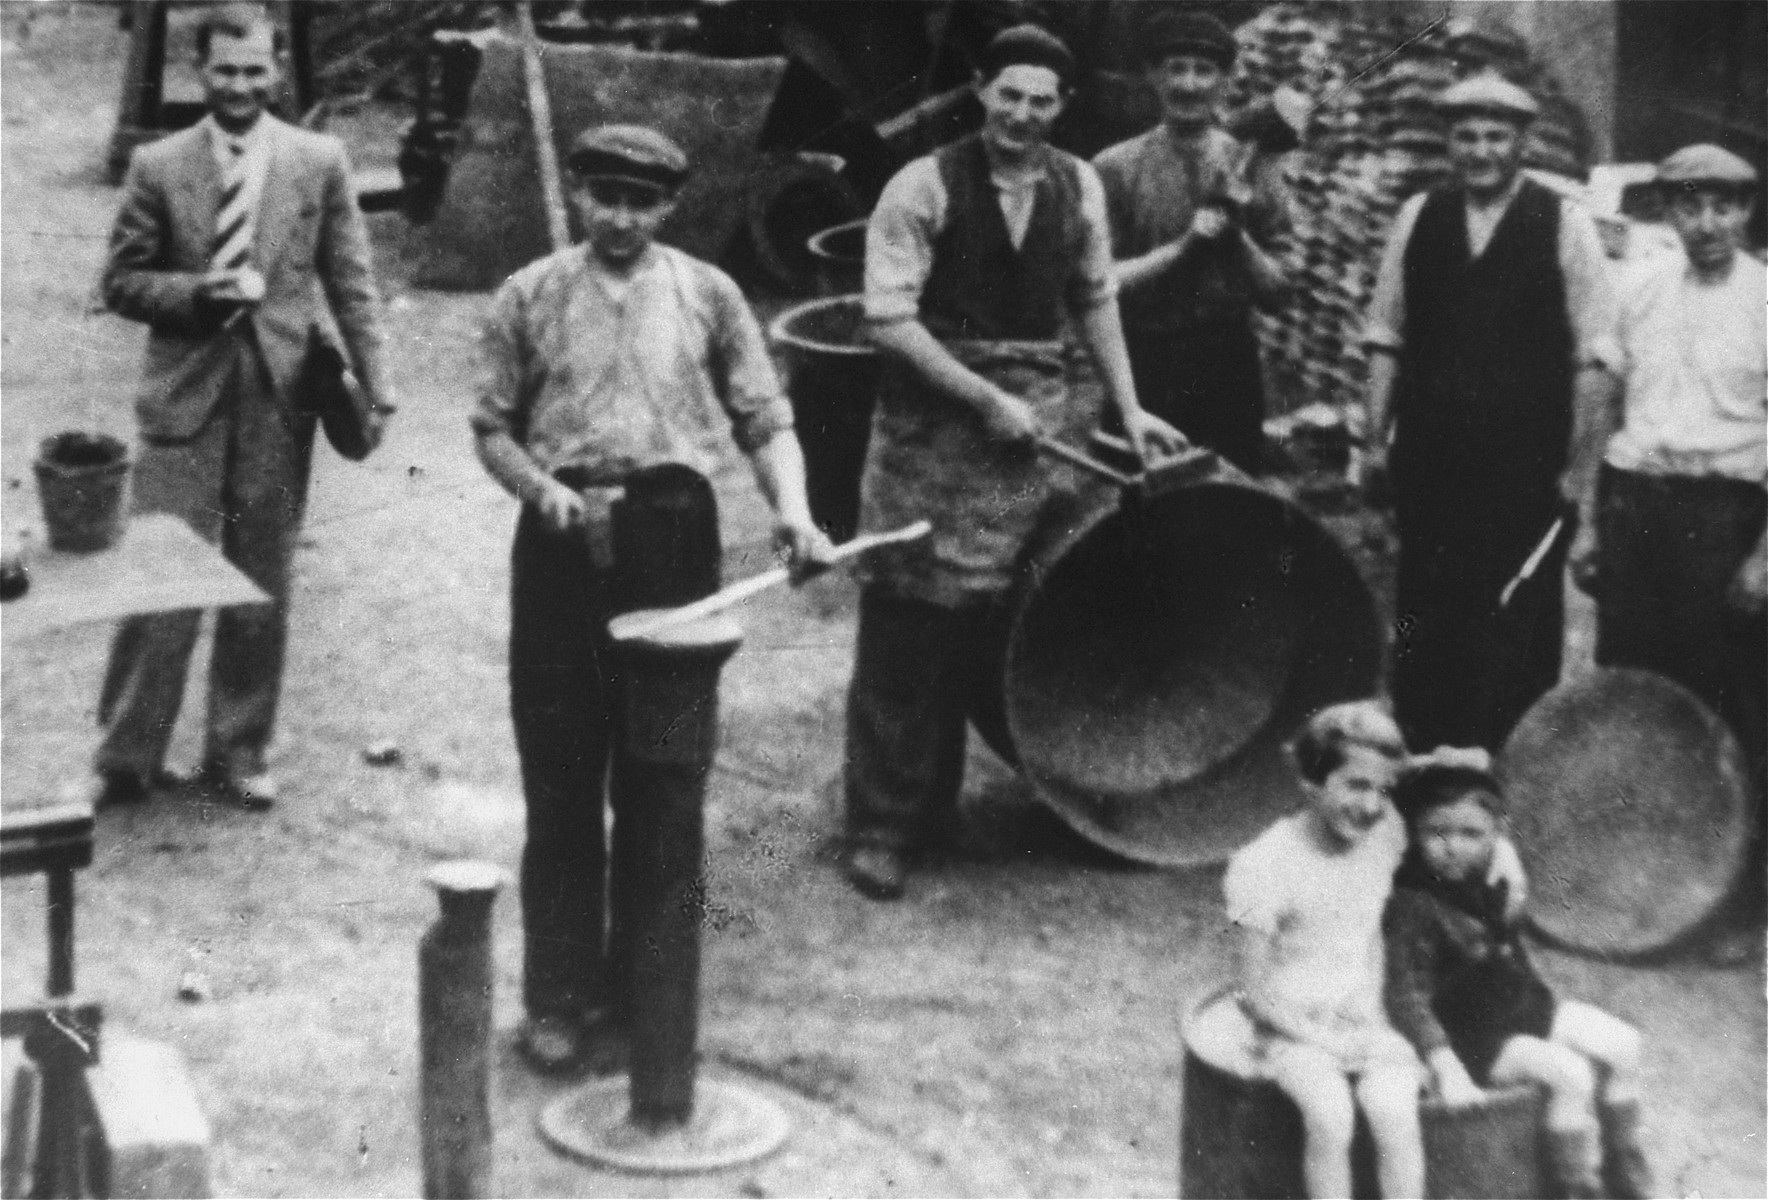 Jews stand among large pots outside a workshop in an unidentified town or ghetto.